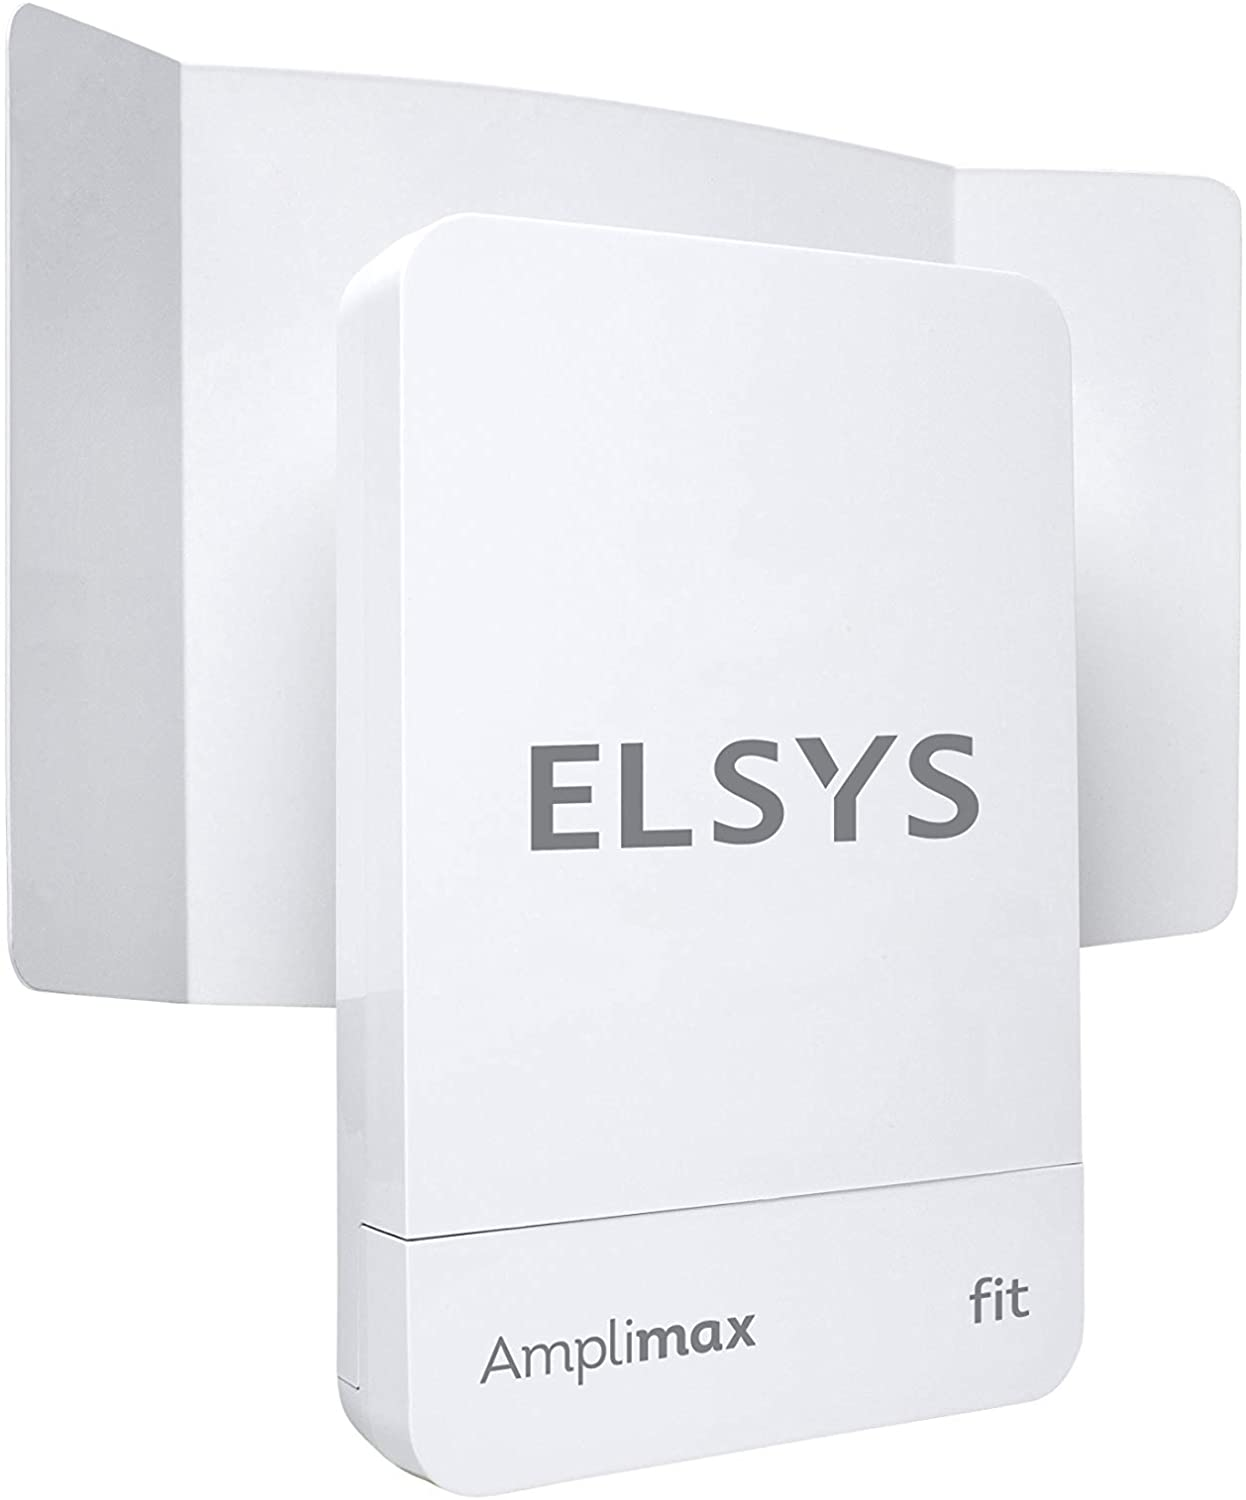 Roteador  4G Amplimax FIT, Elsys, EPRL18